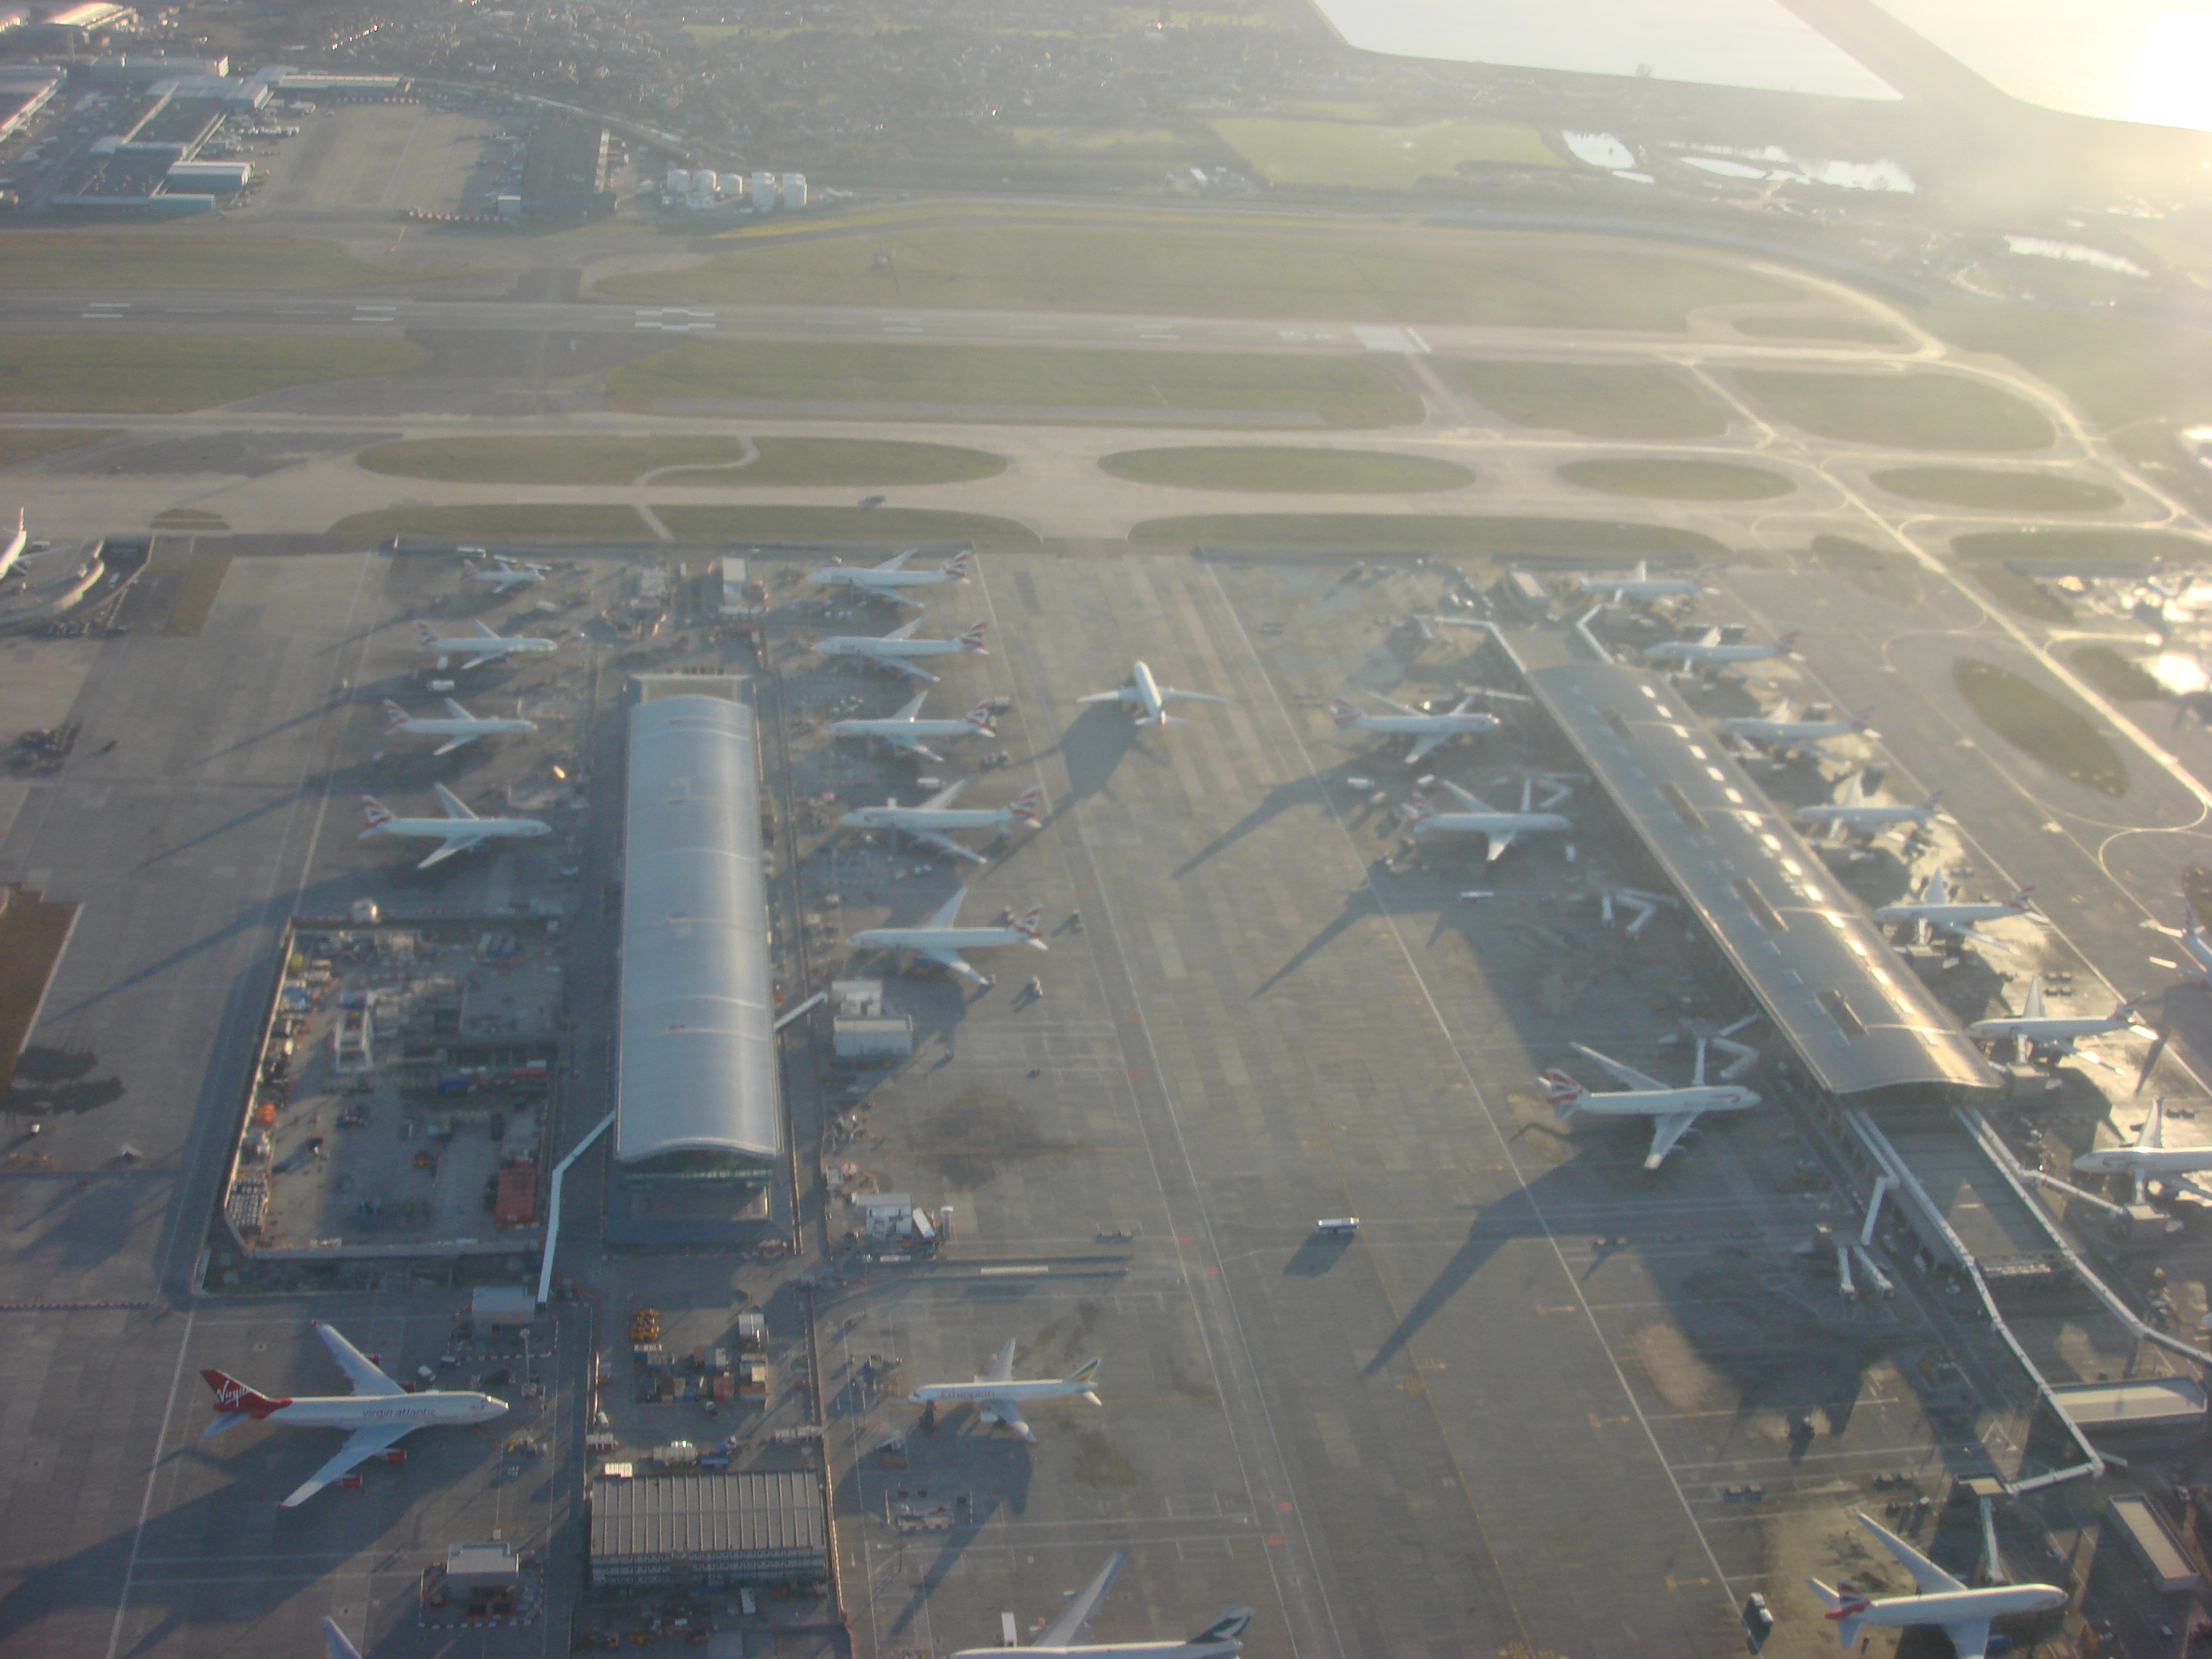 military presence at heathrow airport essay Rogers stirk harbour + partners won the competition for terminal 5 (t5) at heathrow airport in 1989 the terminal became operational in march 2008, after being officially opened by queen elizabeth ii.